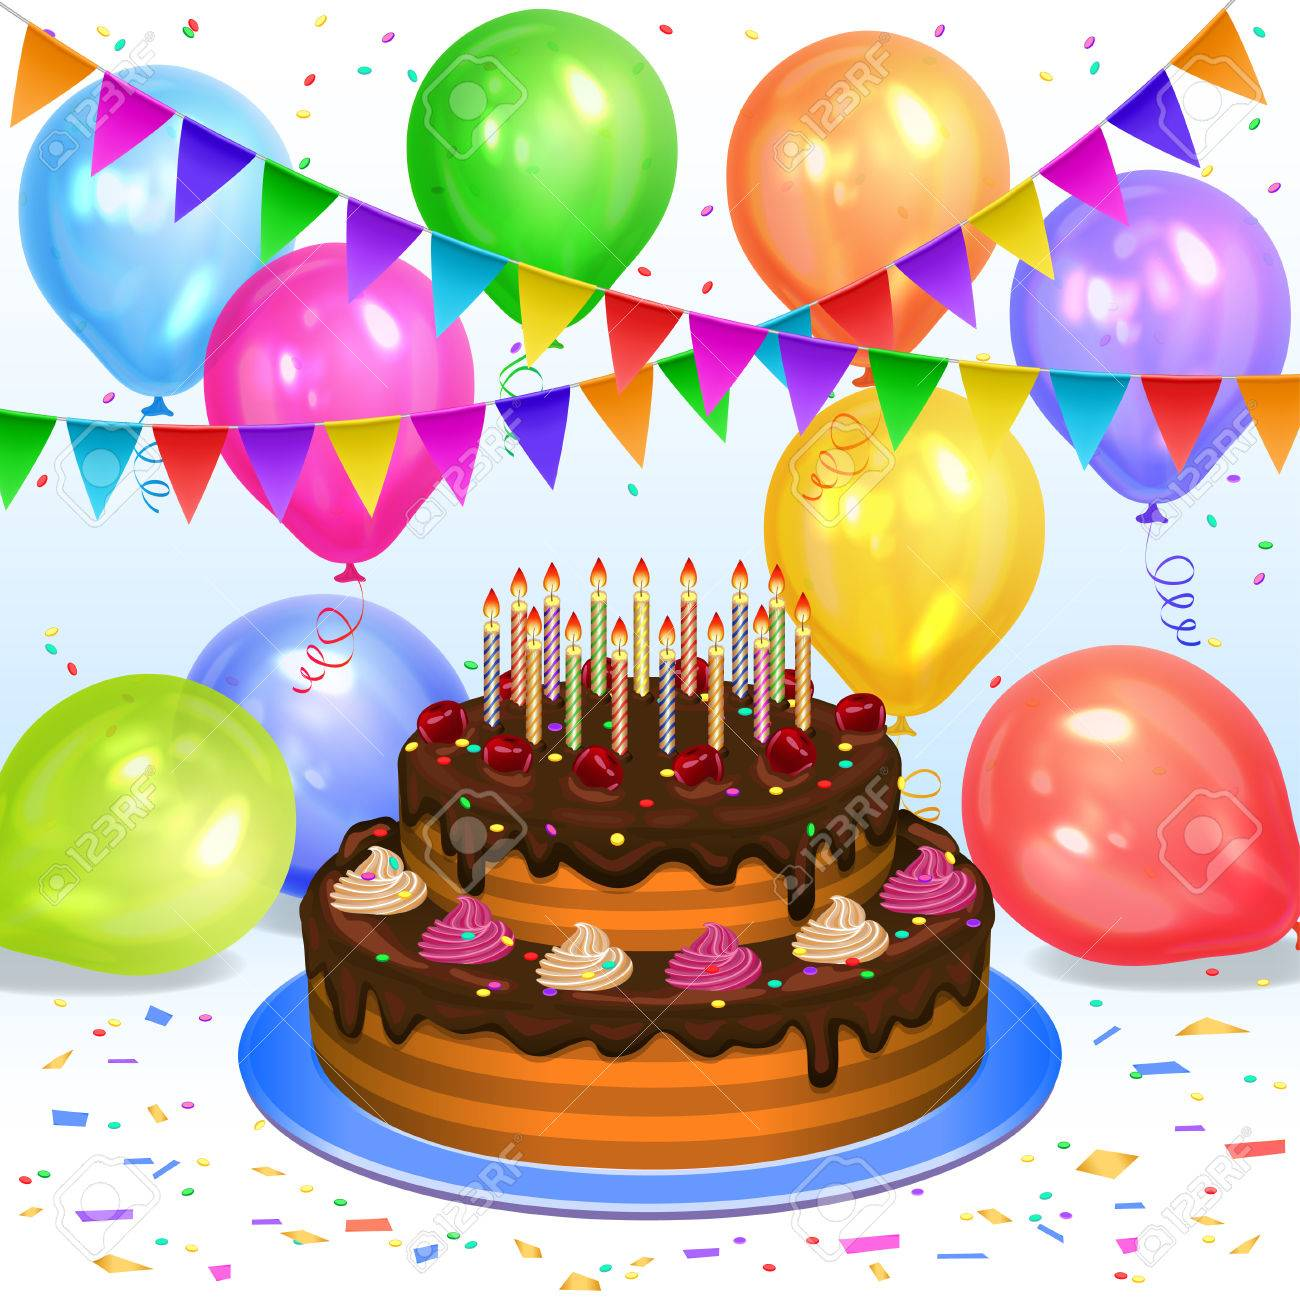 Birthday Cake With Candles Colorful Balloons Confetti And Flags Garlands Decoration For